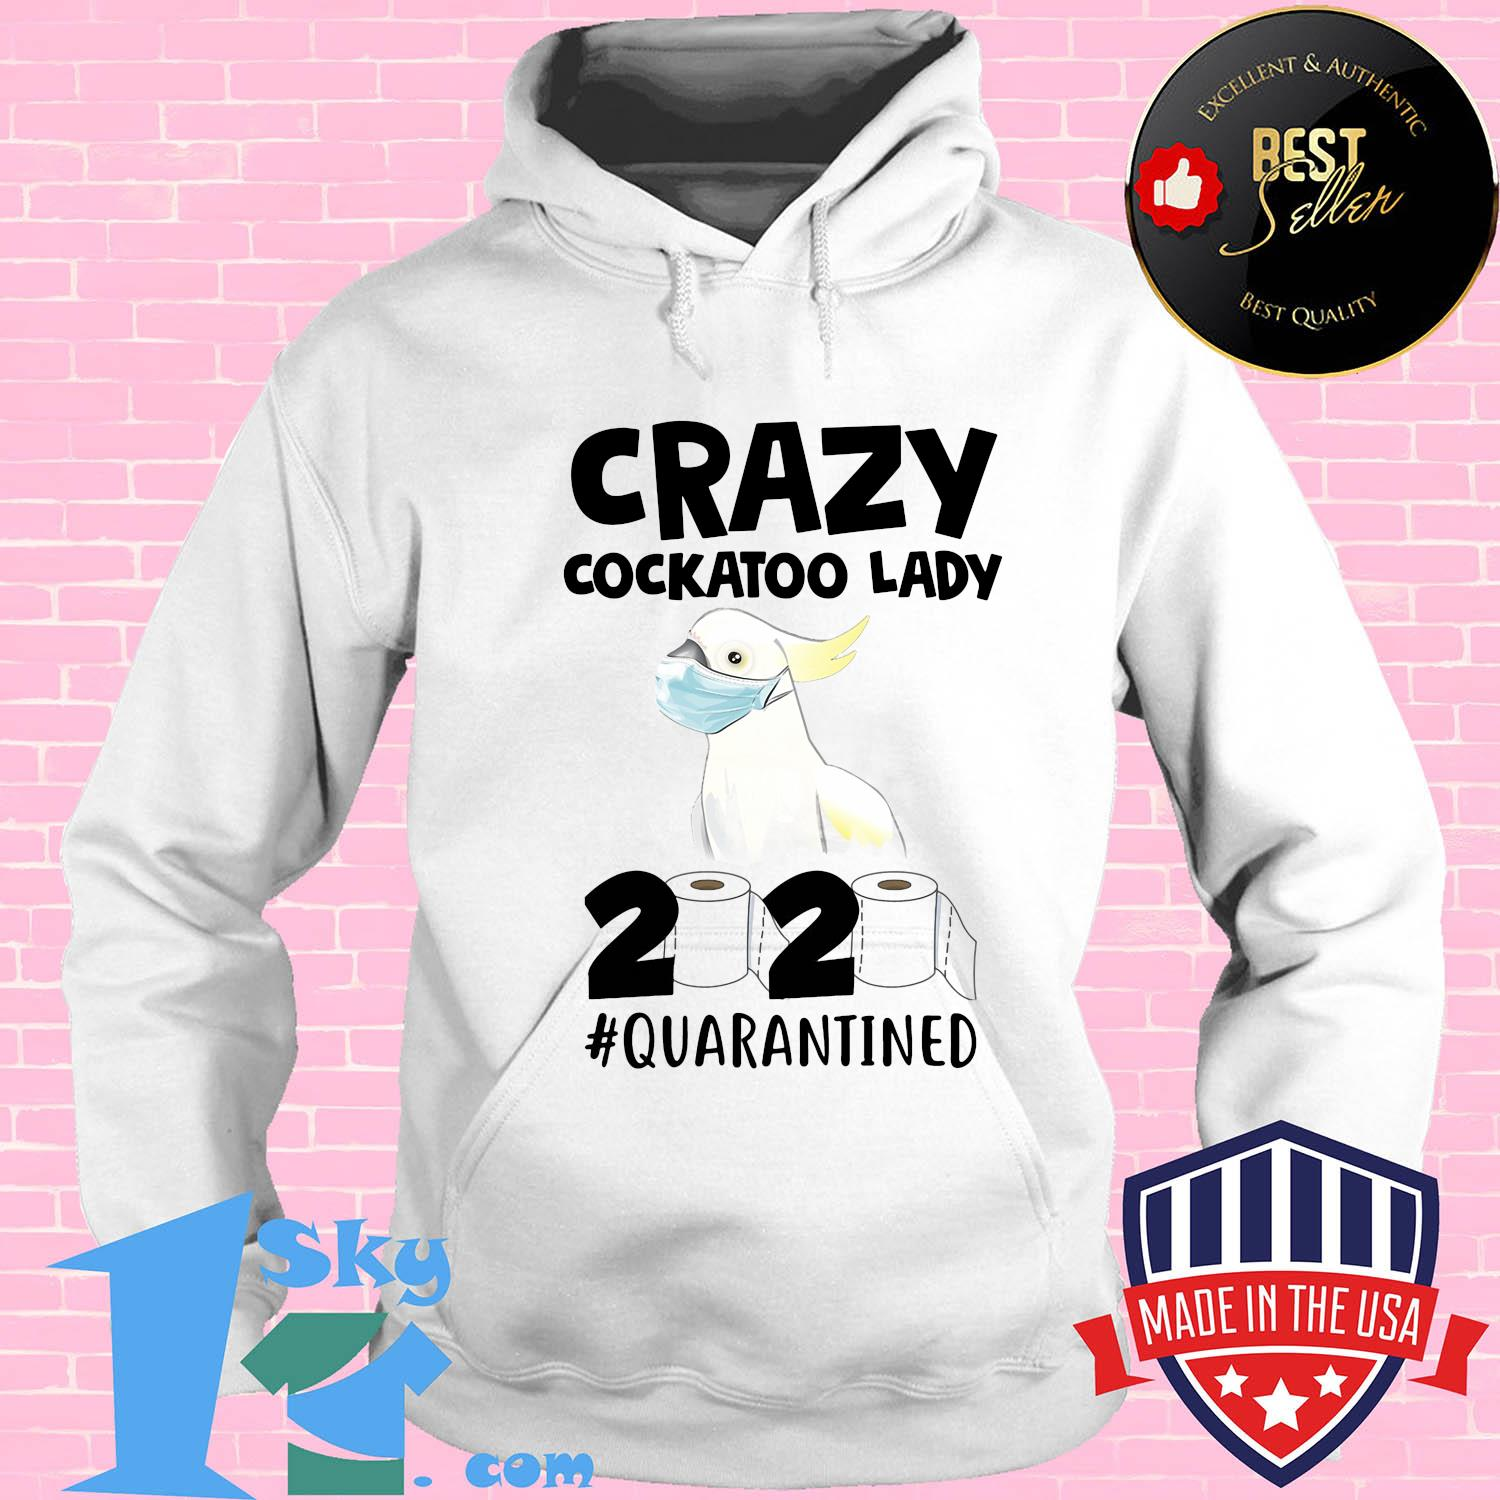 crazy cockatoo lady 2020 isolated toilet paper mask shirt Hoodie - Shop trending - We offer all trend shirts - 1SkyTee